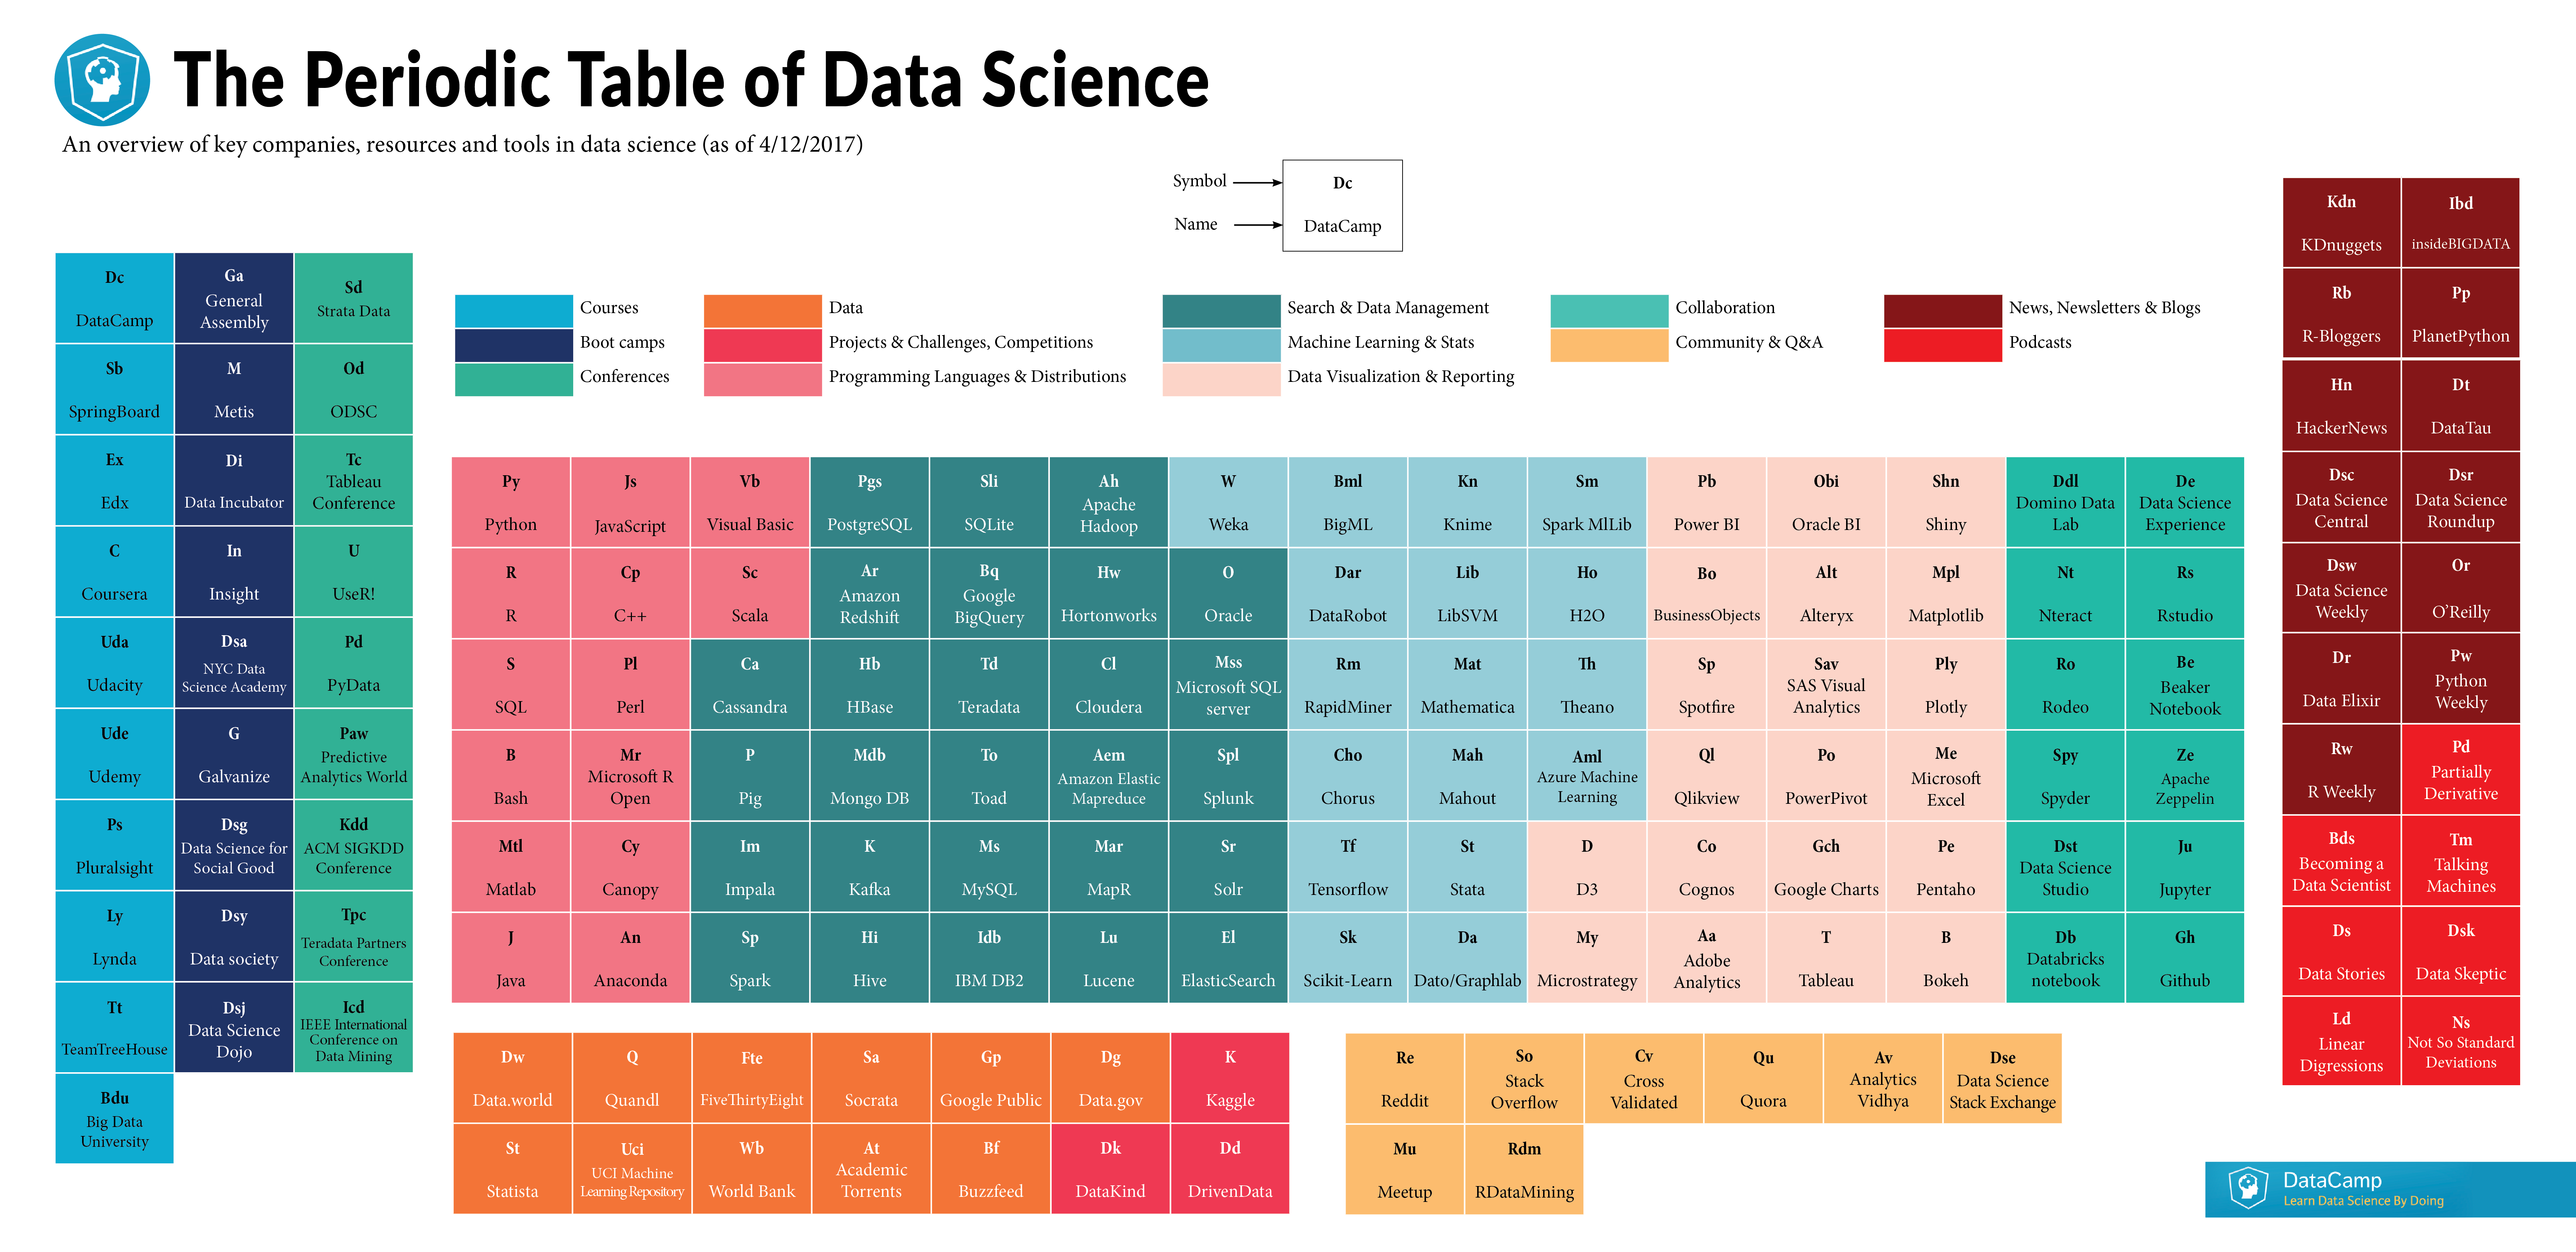 Data science periodic table 150 companies resources and tools data science periodic table 150 companies resources and tools defining the data science gamestrikefo Choice Image